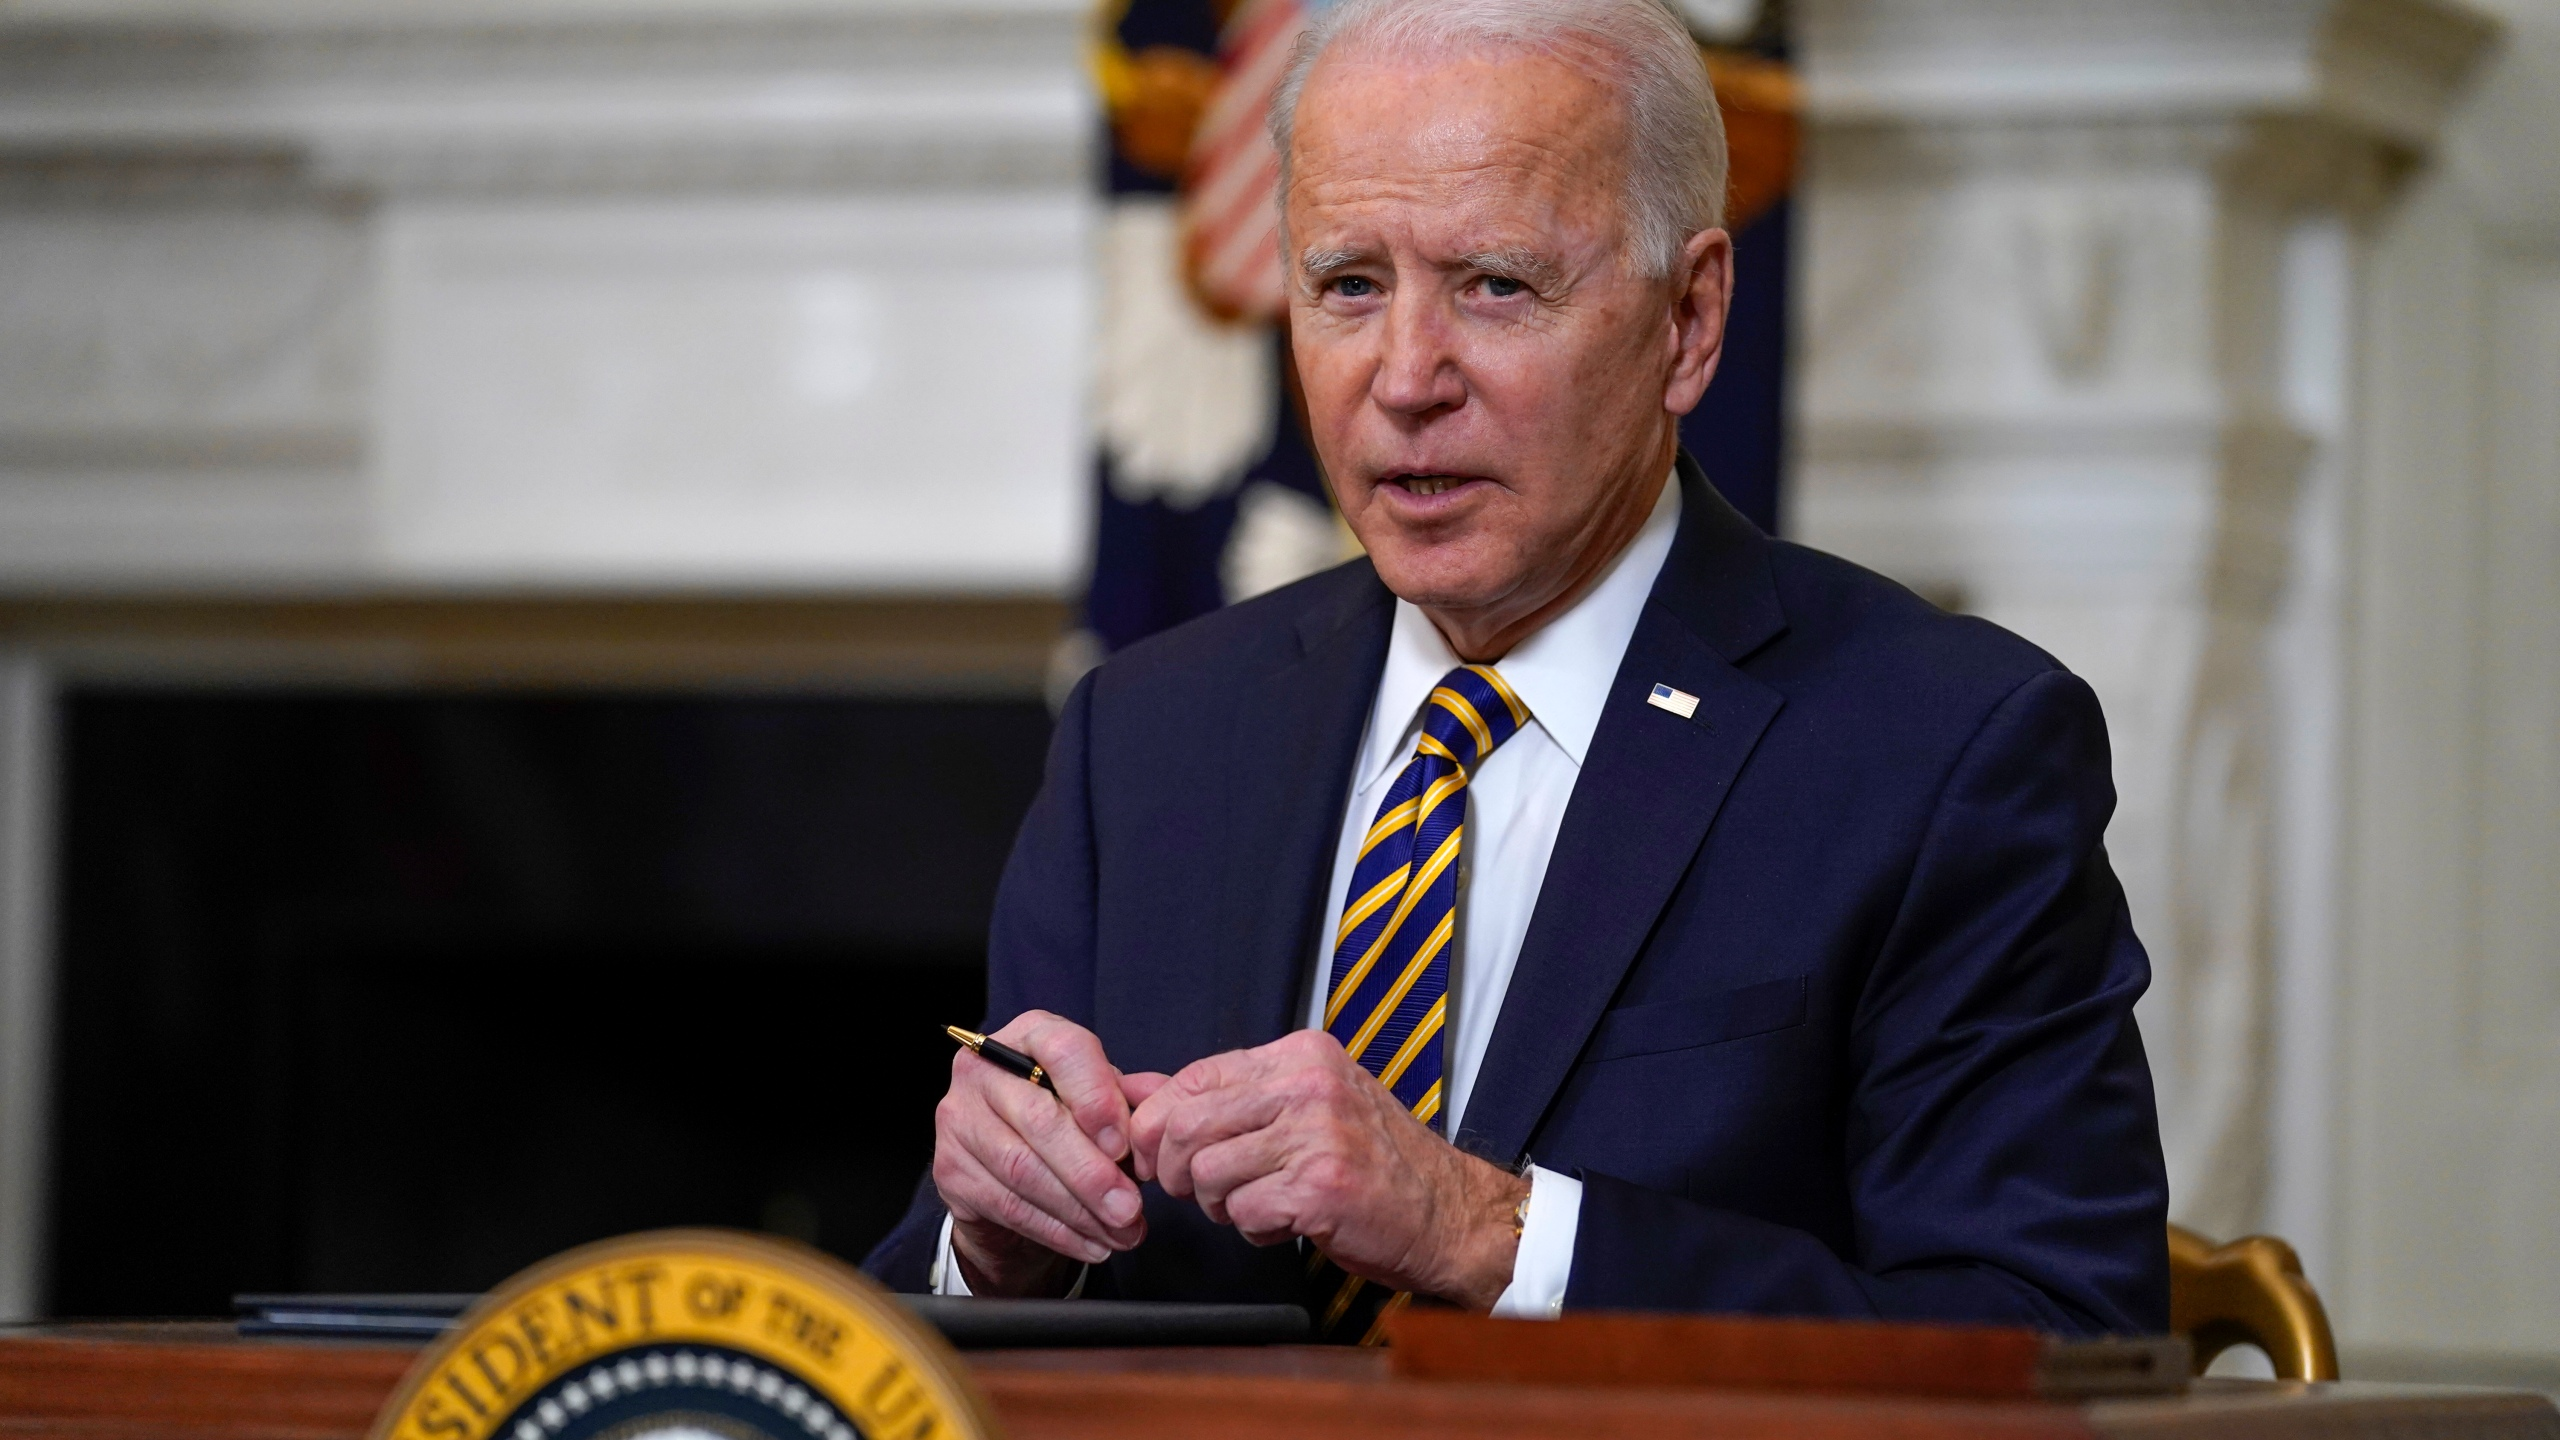 In this Feb. 24, 2021, file photo, President Joe Biden pauses after signing an executive order relating to U.S. supply chains, in the State Dining Room of the White House in Washington. (AP Photo/Evan Vucci, File)